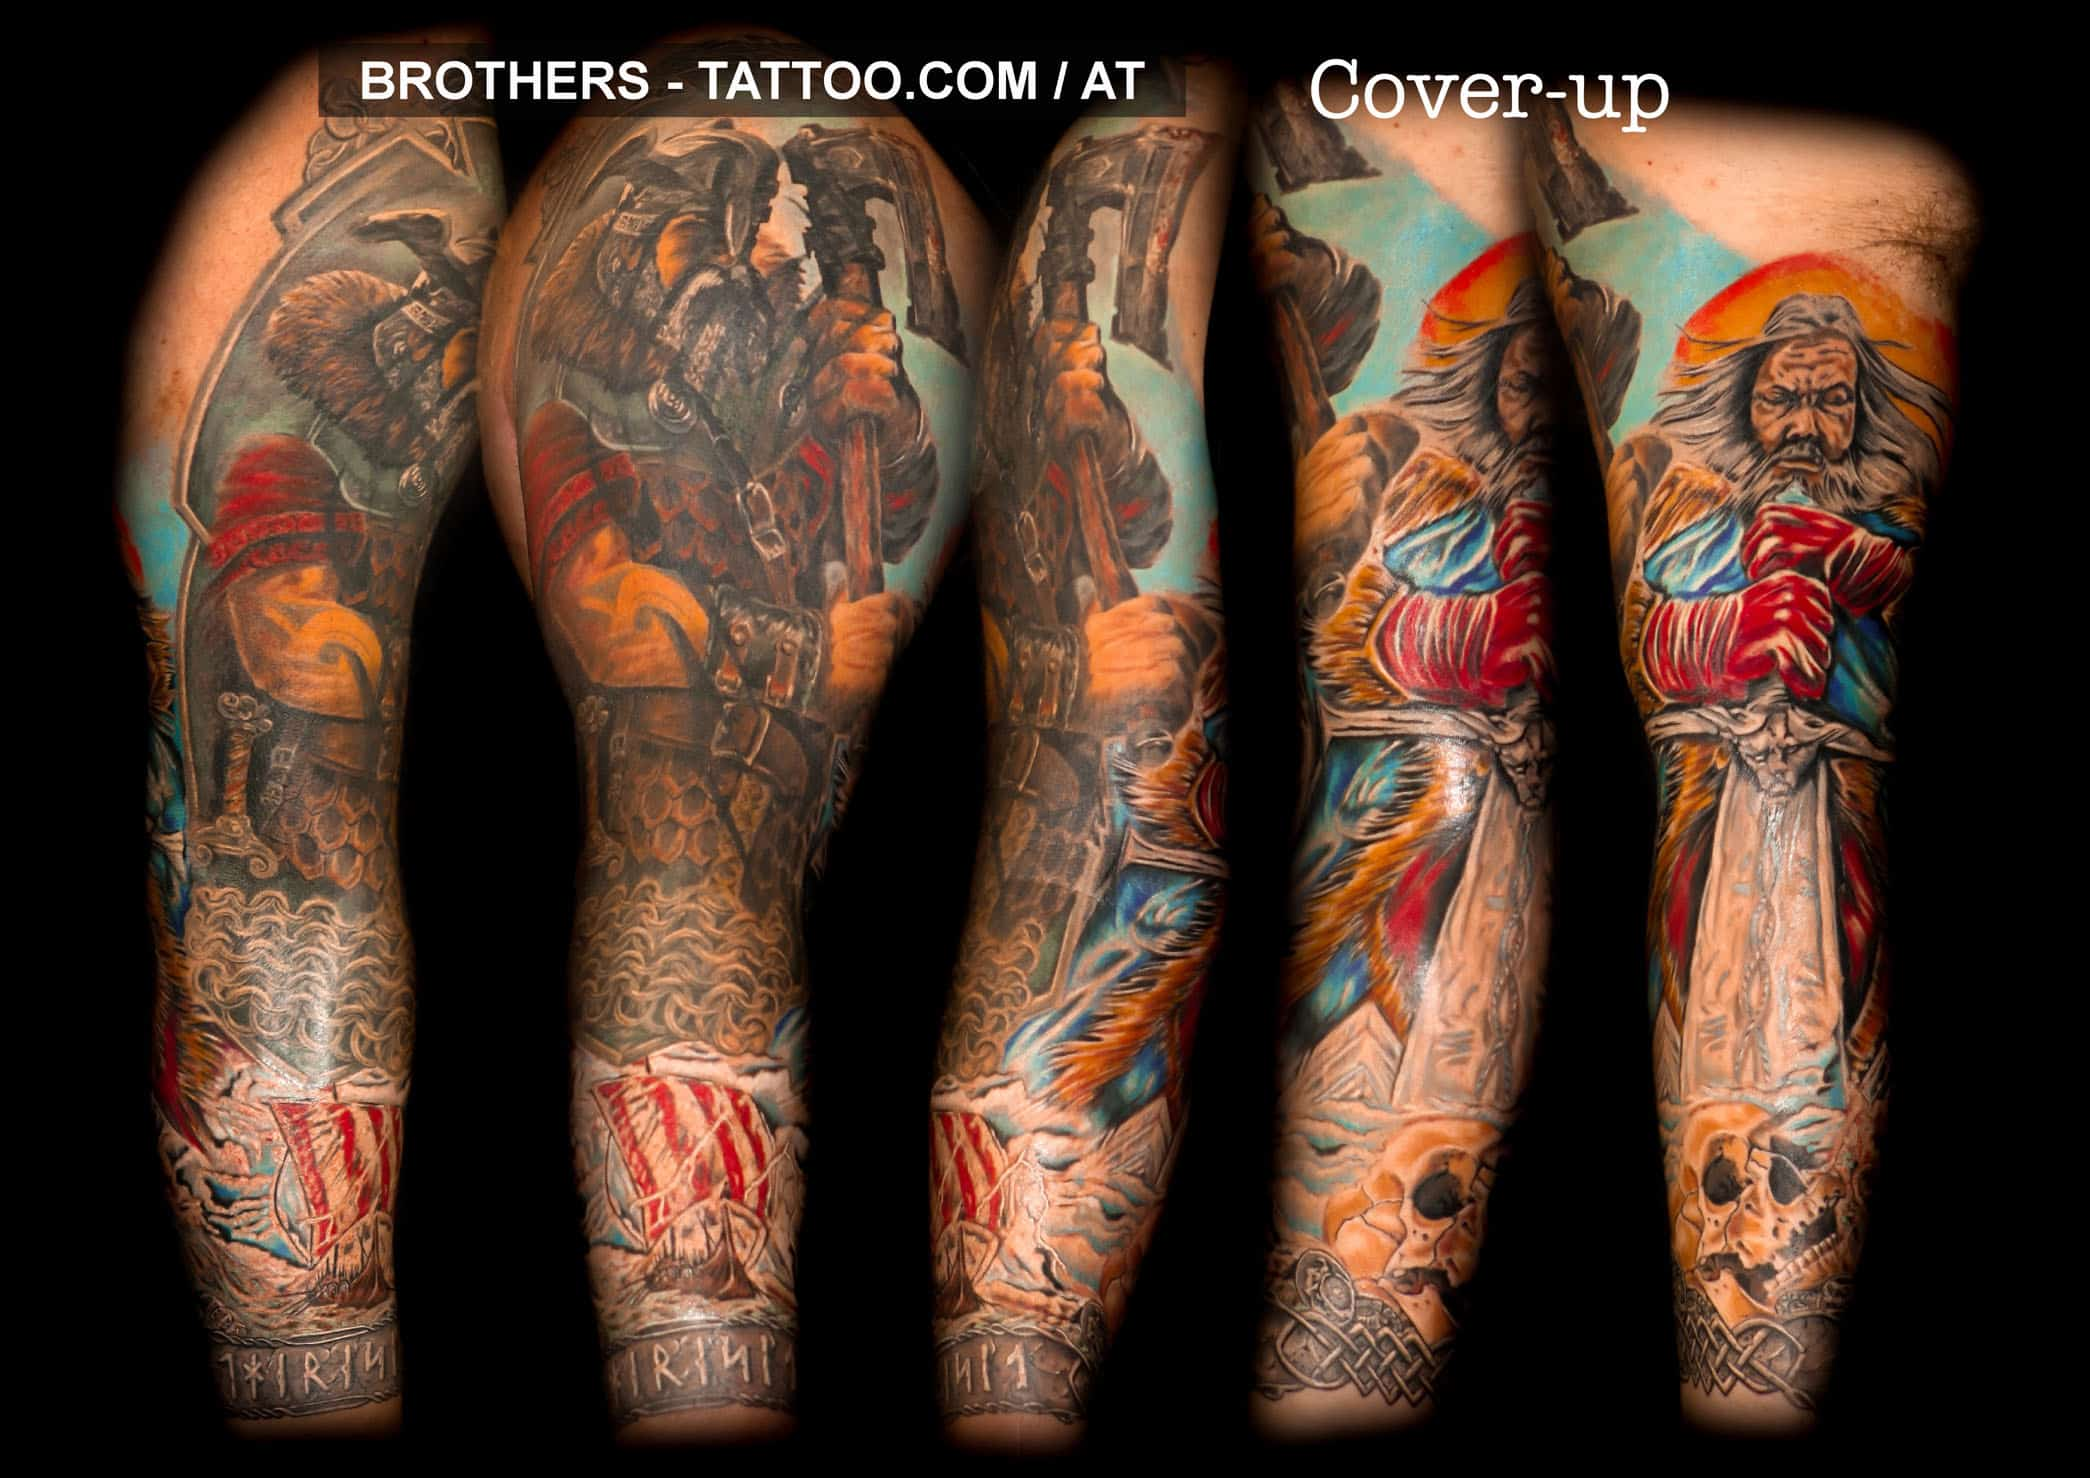 Tattoo Vorlagen Arm Komplett Cover Up Tattoo Brothers Tattoo Piercing Tattoostudio